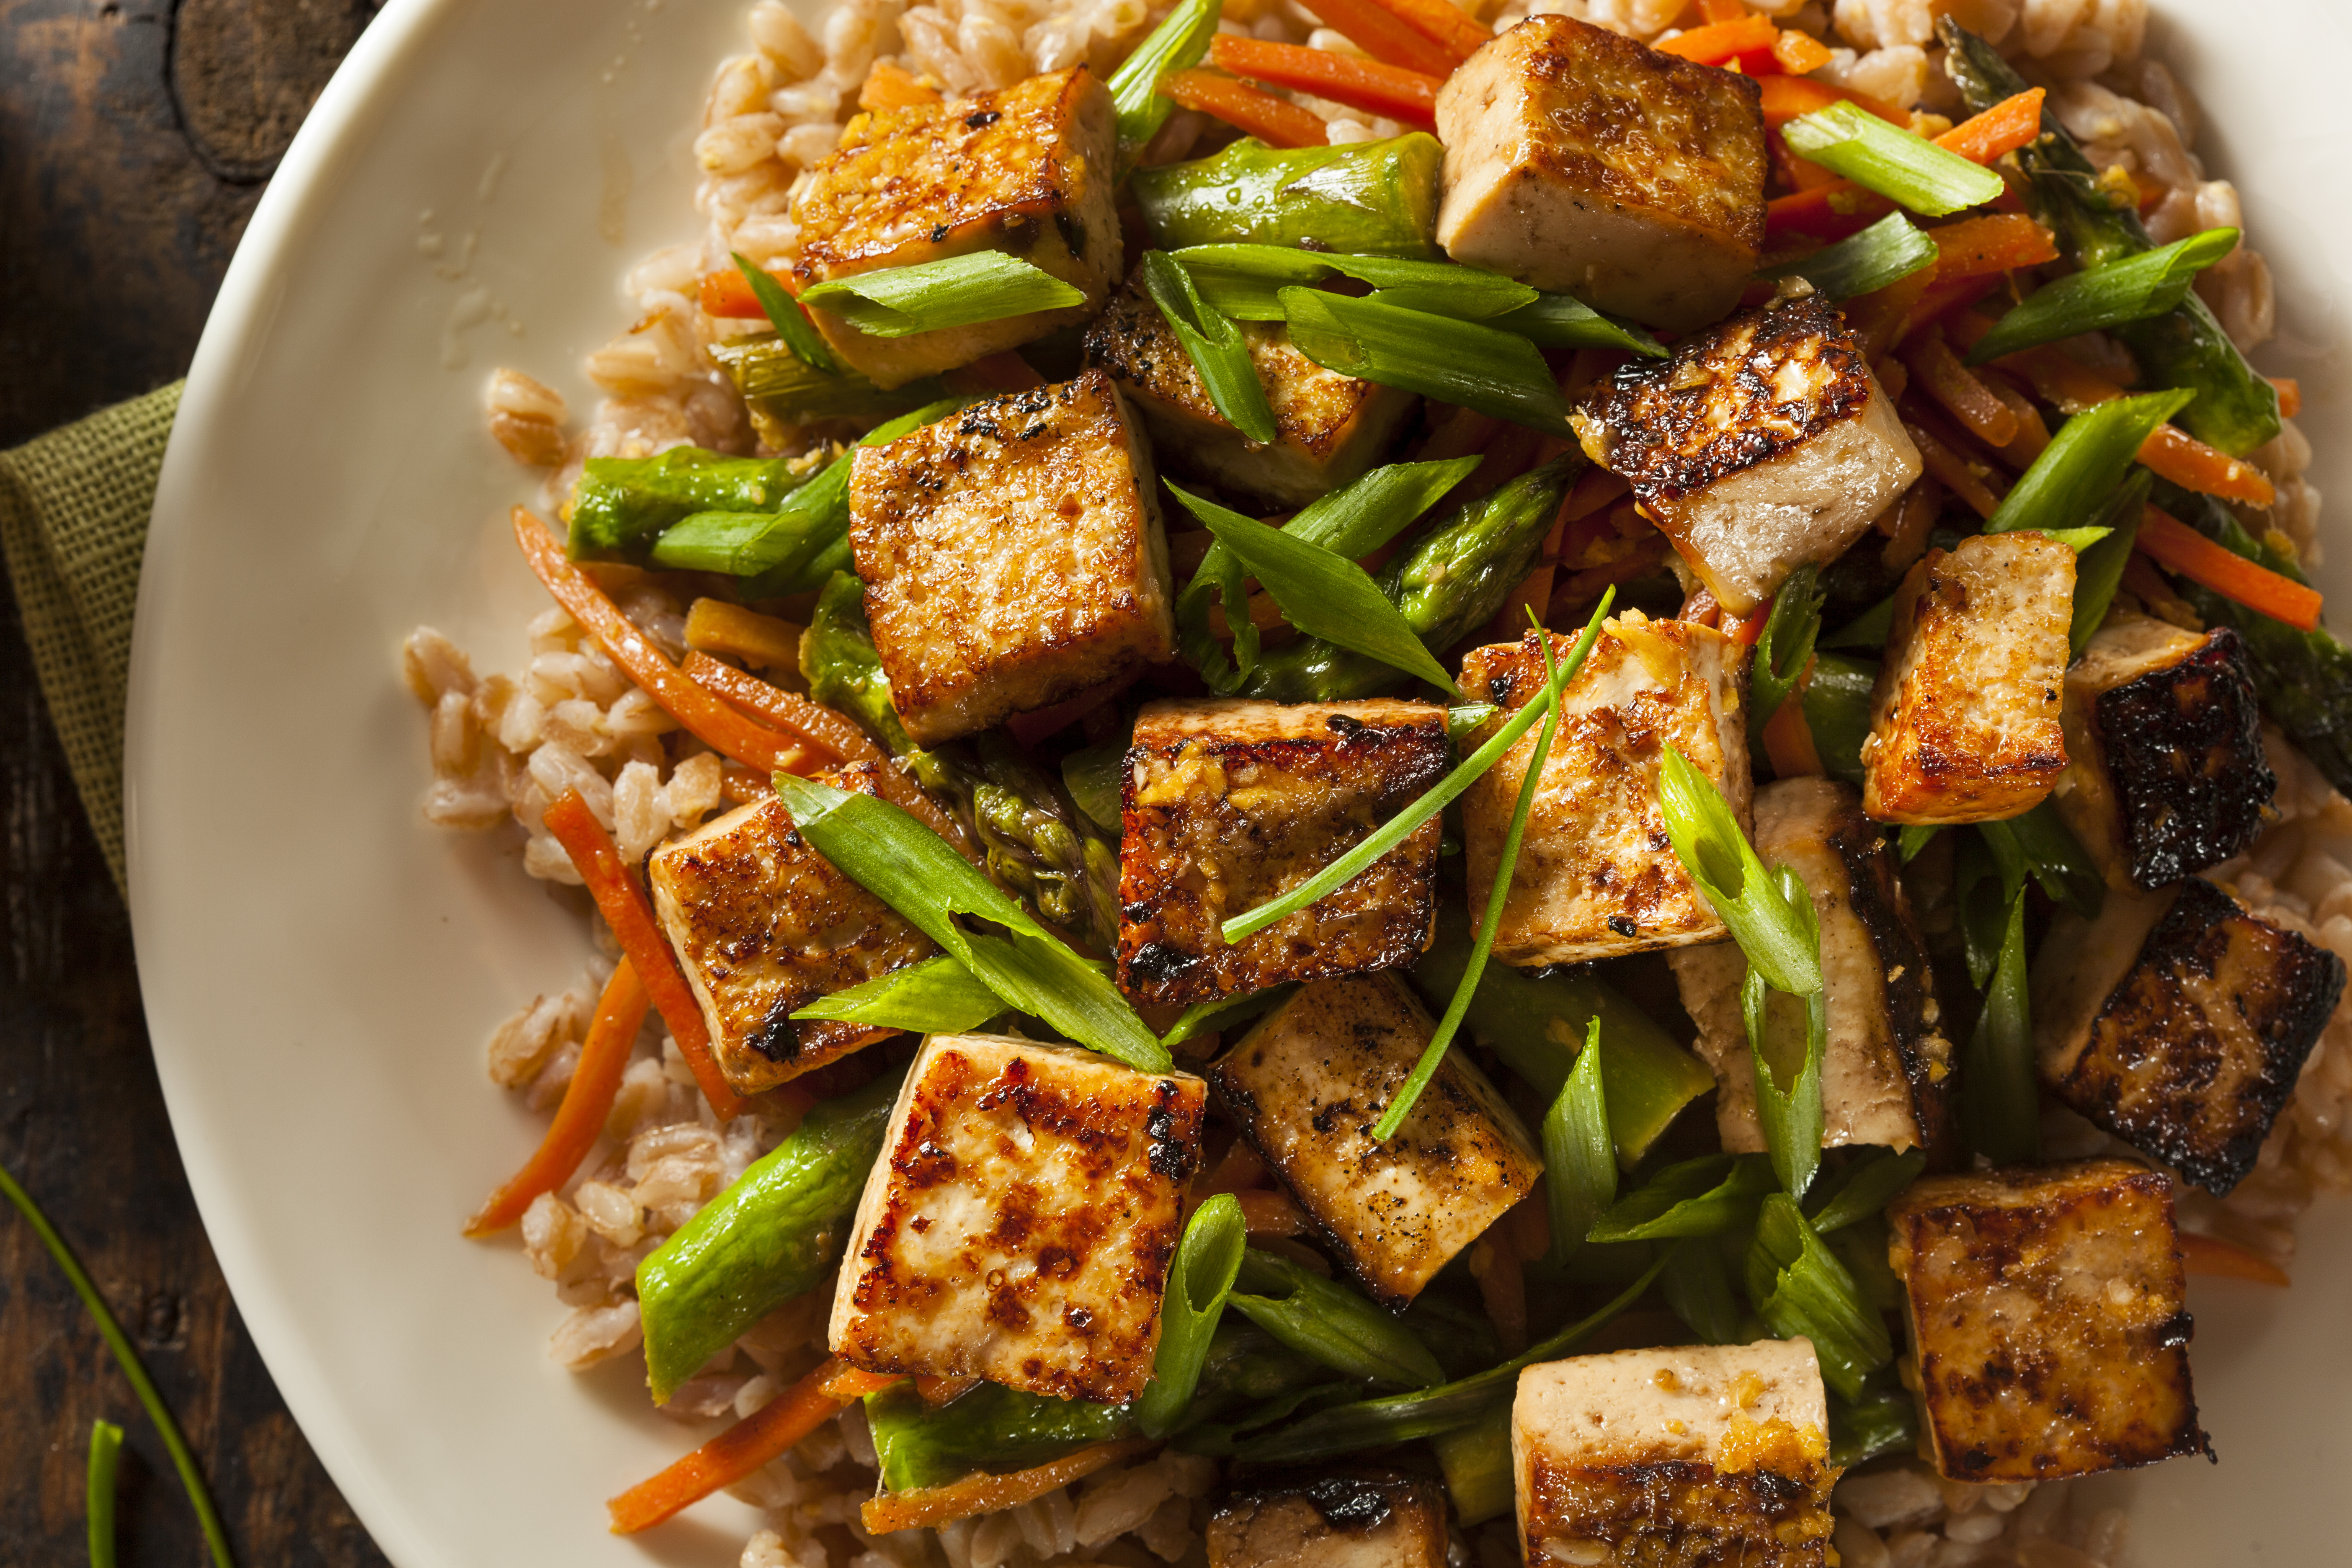 Five Spice Tofu Stir-Fry with whole grain rice